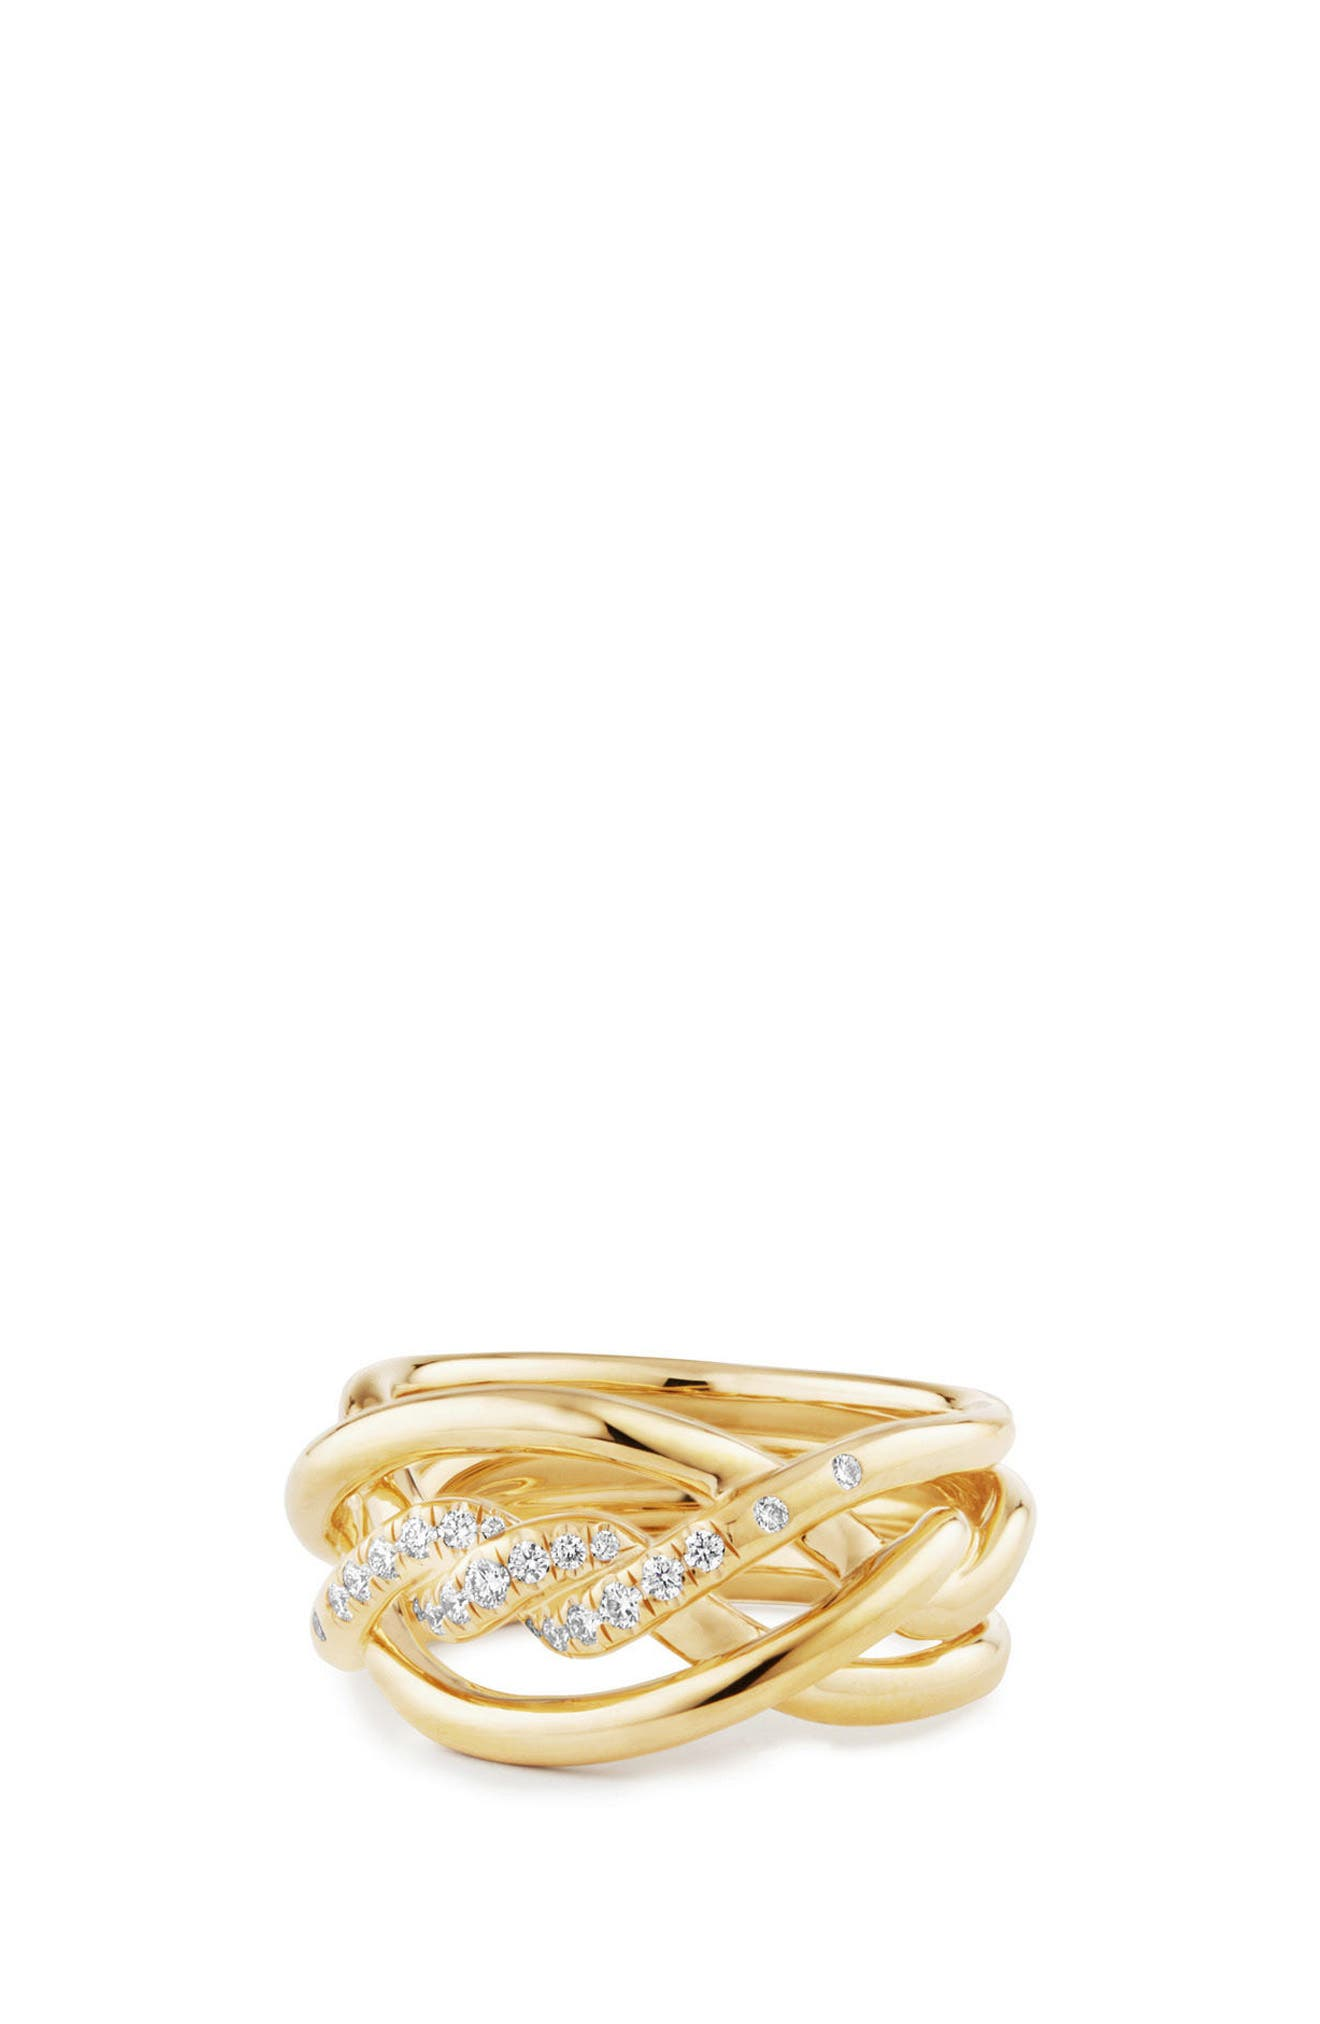 Continuance Ring with Diamonds in 18K Gold, 11.5mm,                             Main thumbnail 1, color,                             Yellow Gold